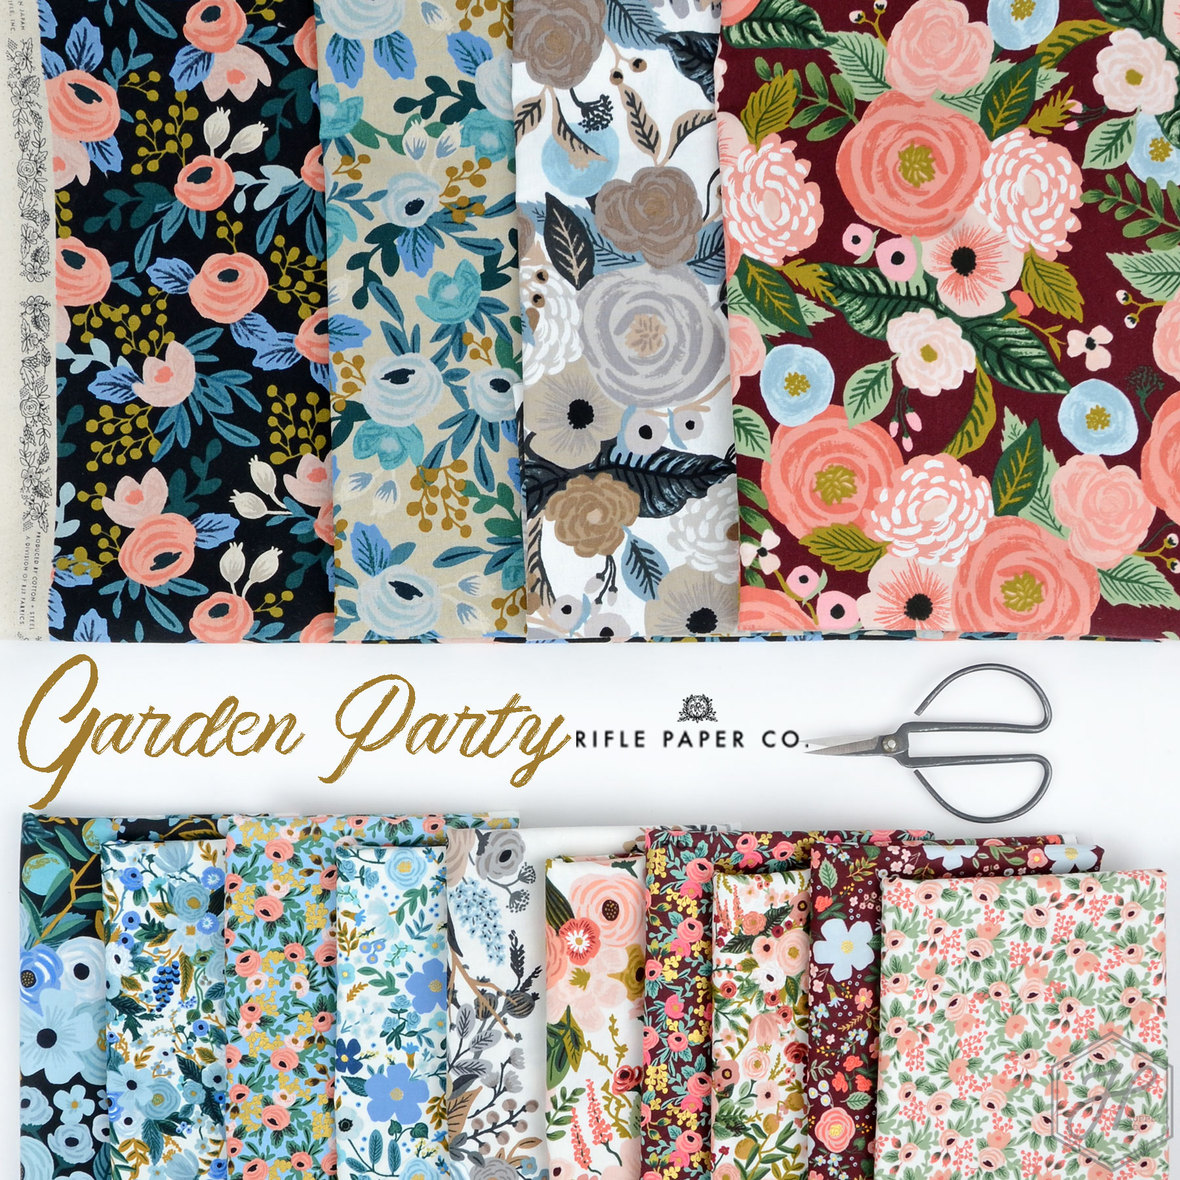 Garden-Party-Fabric-Rifle-Paper-Co-for-Cotton-and-Steel-at-Hawthorne-Supply-Co